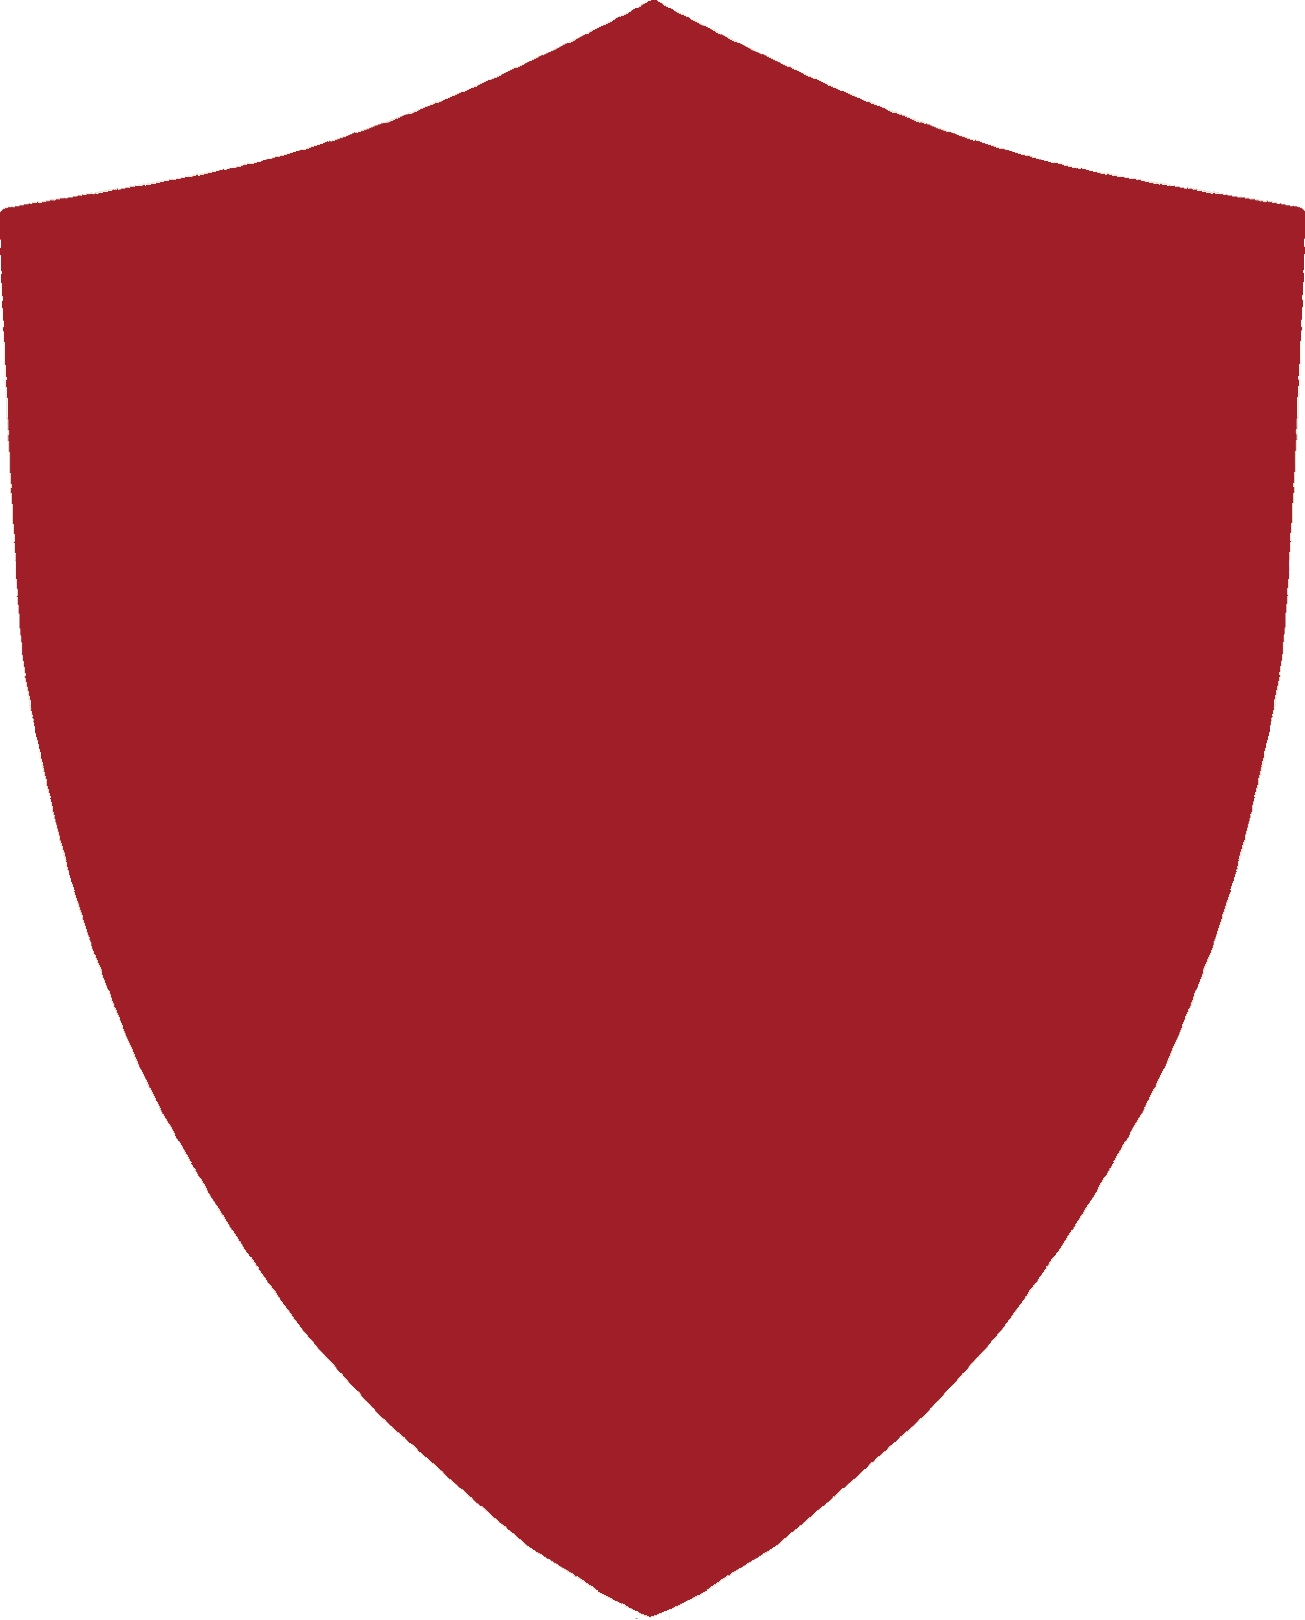 1305x1620 Shield Inset Mirror Red Free Images